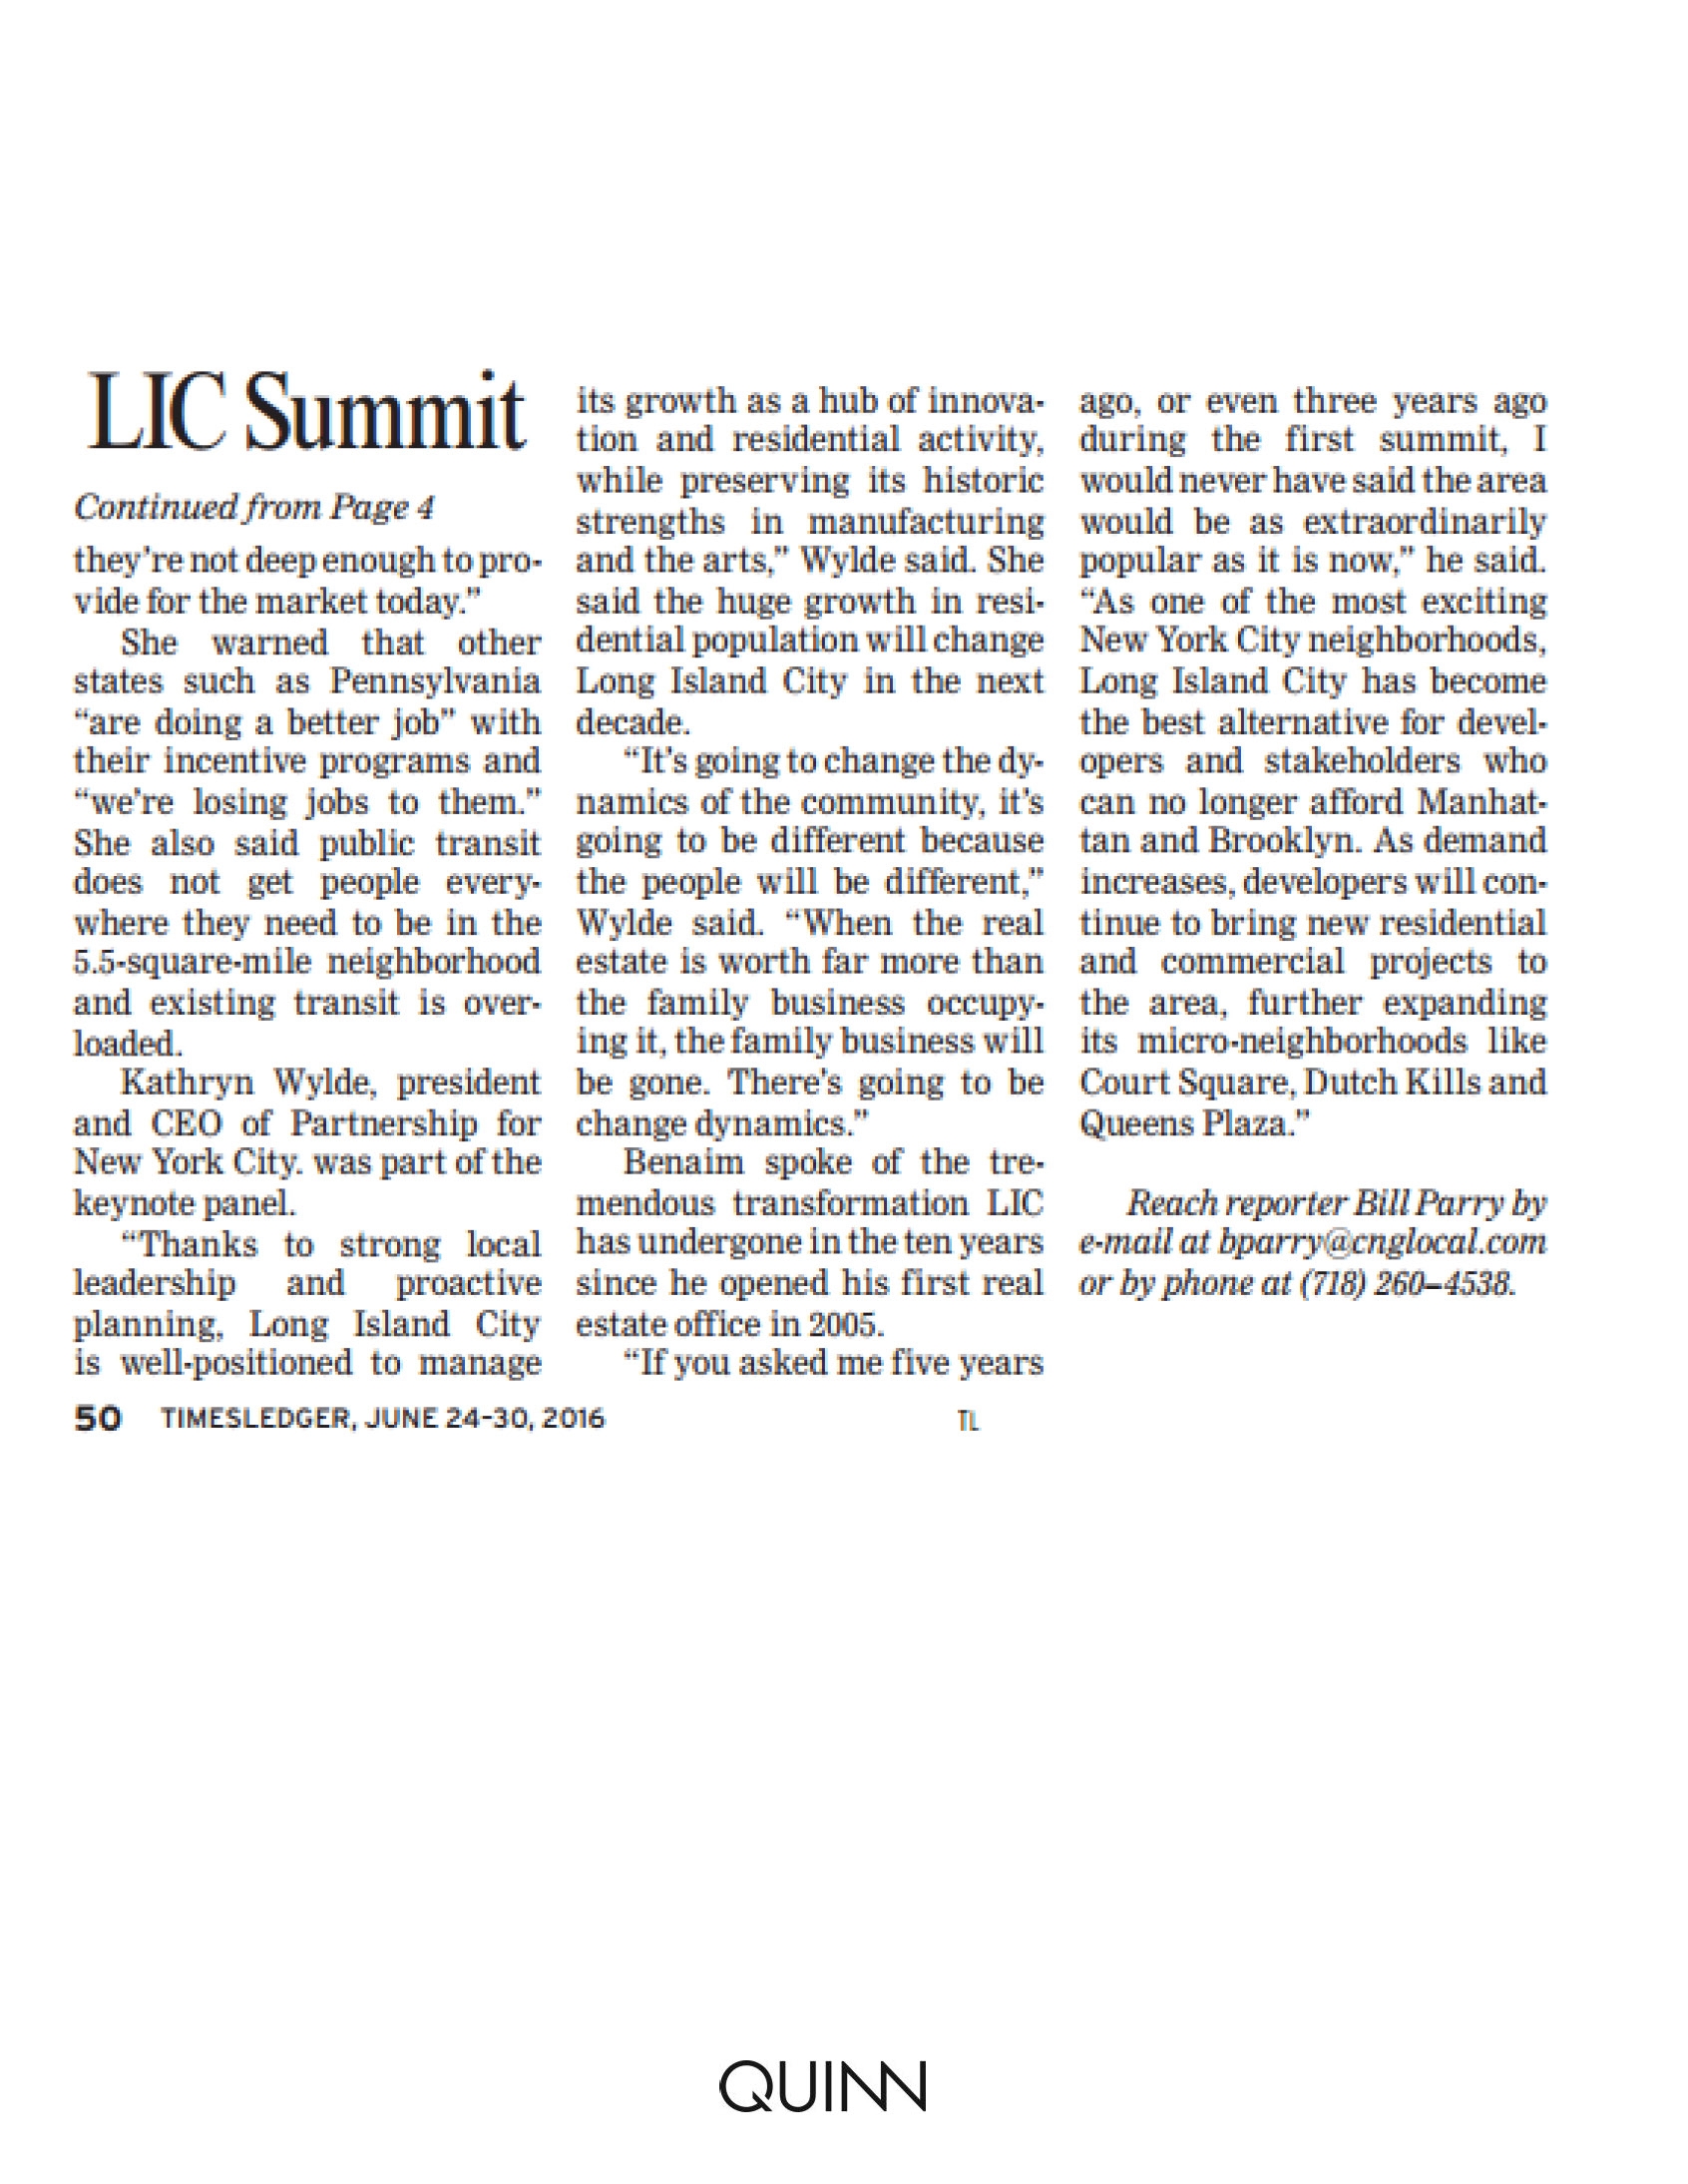 TimesLedger - LIC Summit told biz survey finds 87% plan to stay in nabe - 6.24_Page_2